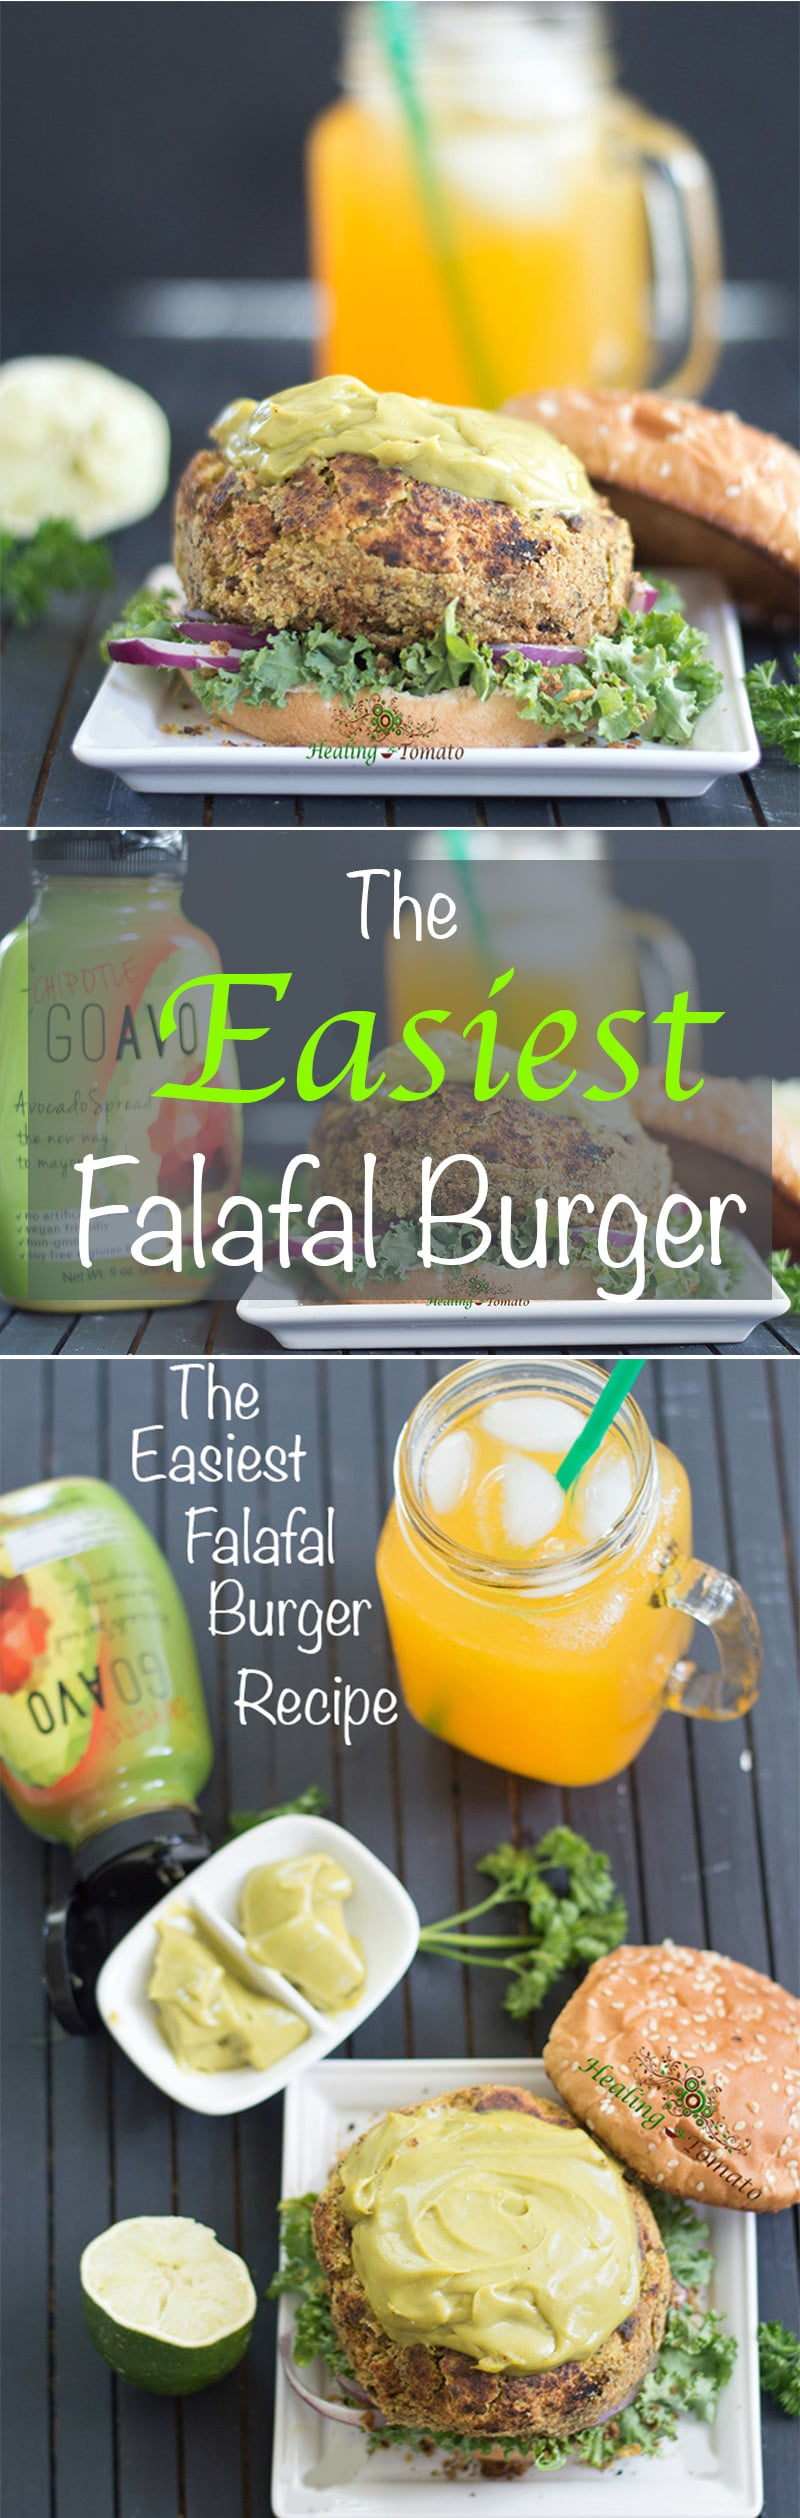 This falafal burger is the best veggie burger you will every eat. Made with chickpeas, parsley and flax seed meal. Takes only 30 minutes to make